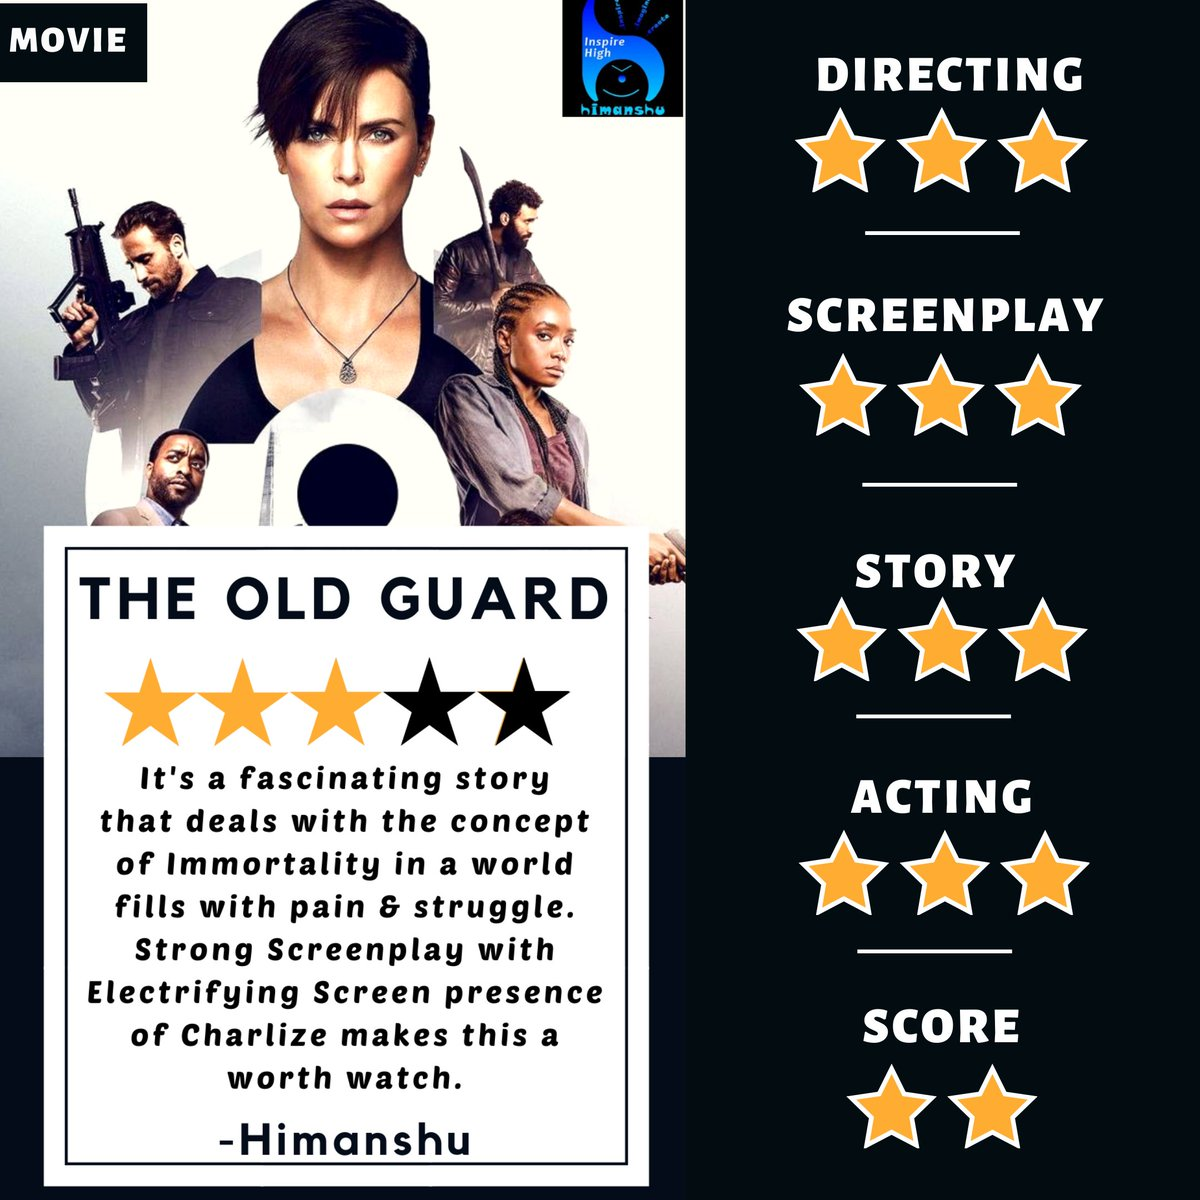 The Old Guard (2020) - Rapid Review by Himanshu  Him Rating: 3/5   @CharlizeAfrica @netflix #netflixmovies #charlizetheron #theoldguardmovie #theoldguard #dramamovie #moviefan #movie #moviereviews #reviewpic.twitter.com/TvavcbiCwo